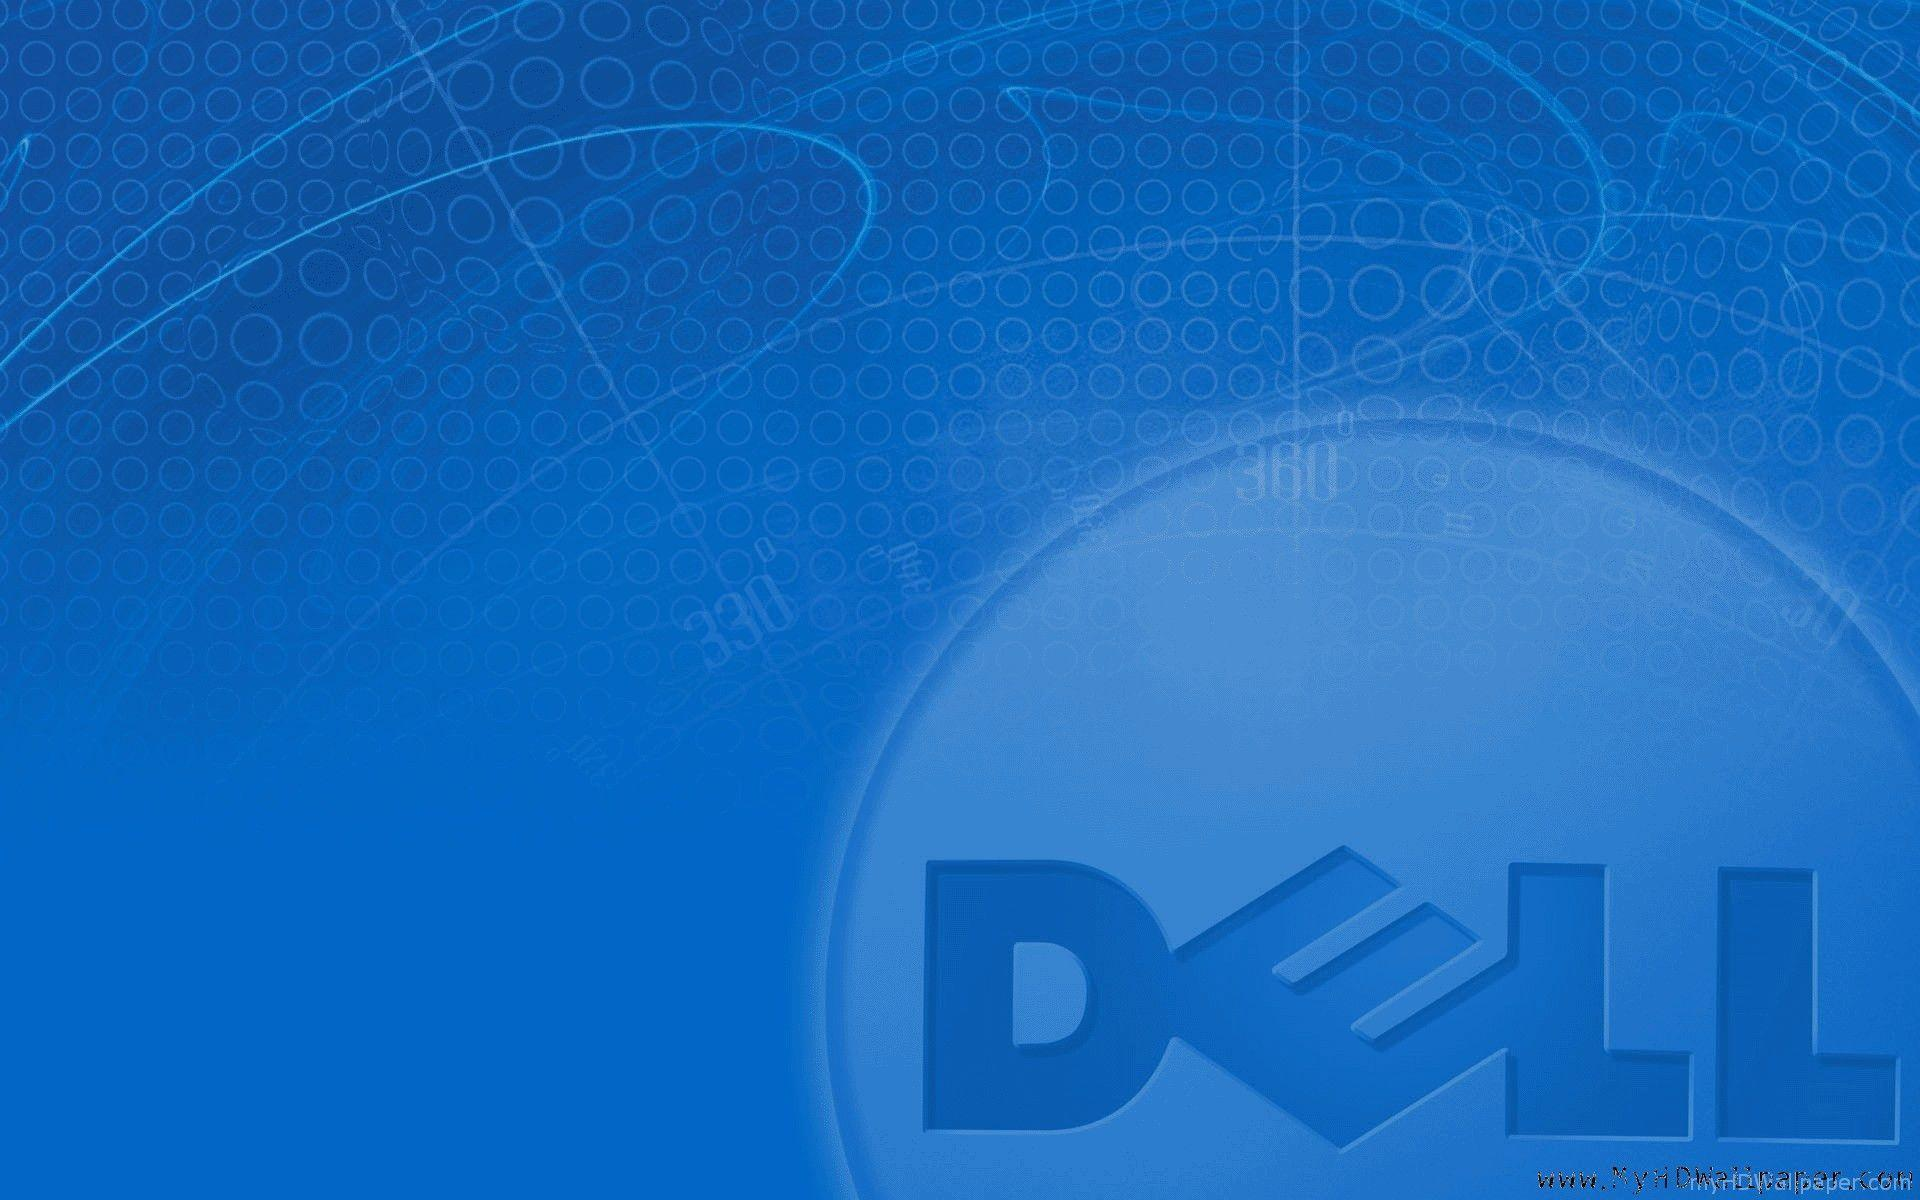 dell computers wallpaper logo - photo #16